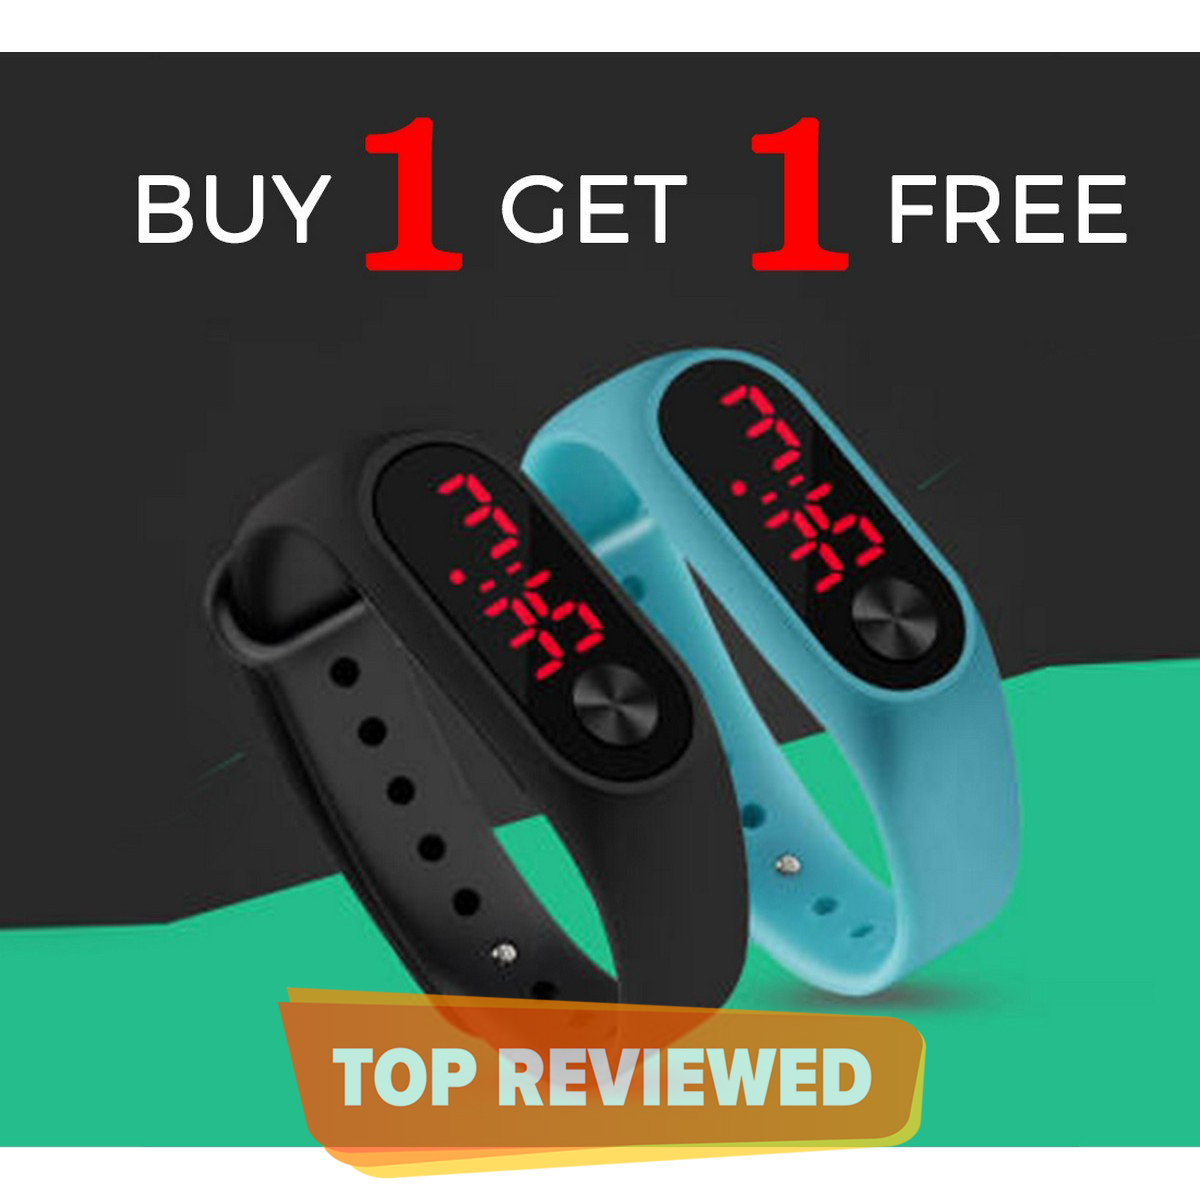 Pack of 2 M3 Touch LED Sports Bracelet Digital Wrist Band - Smart Watch for Hand - Multicolor